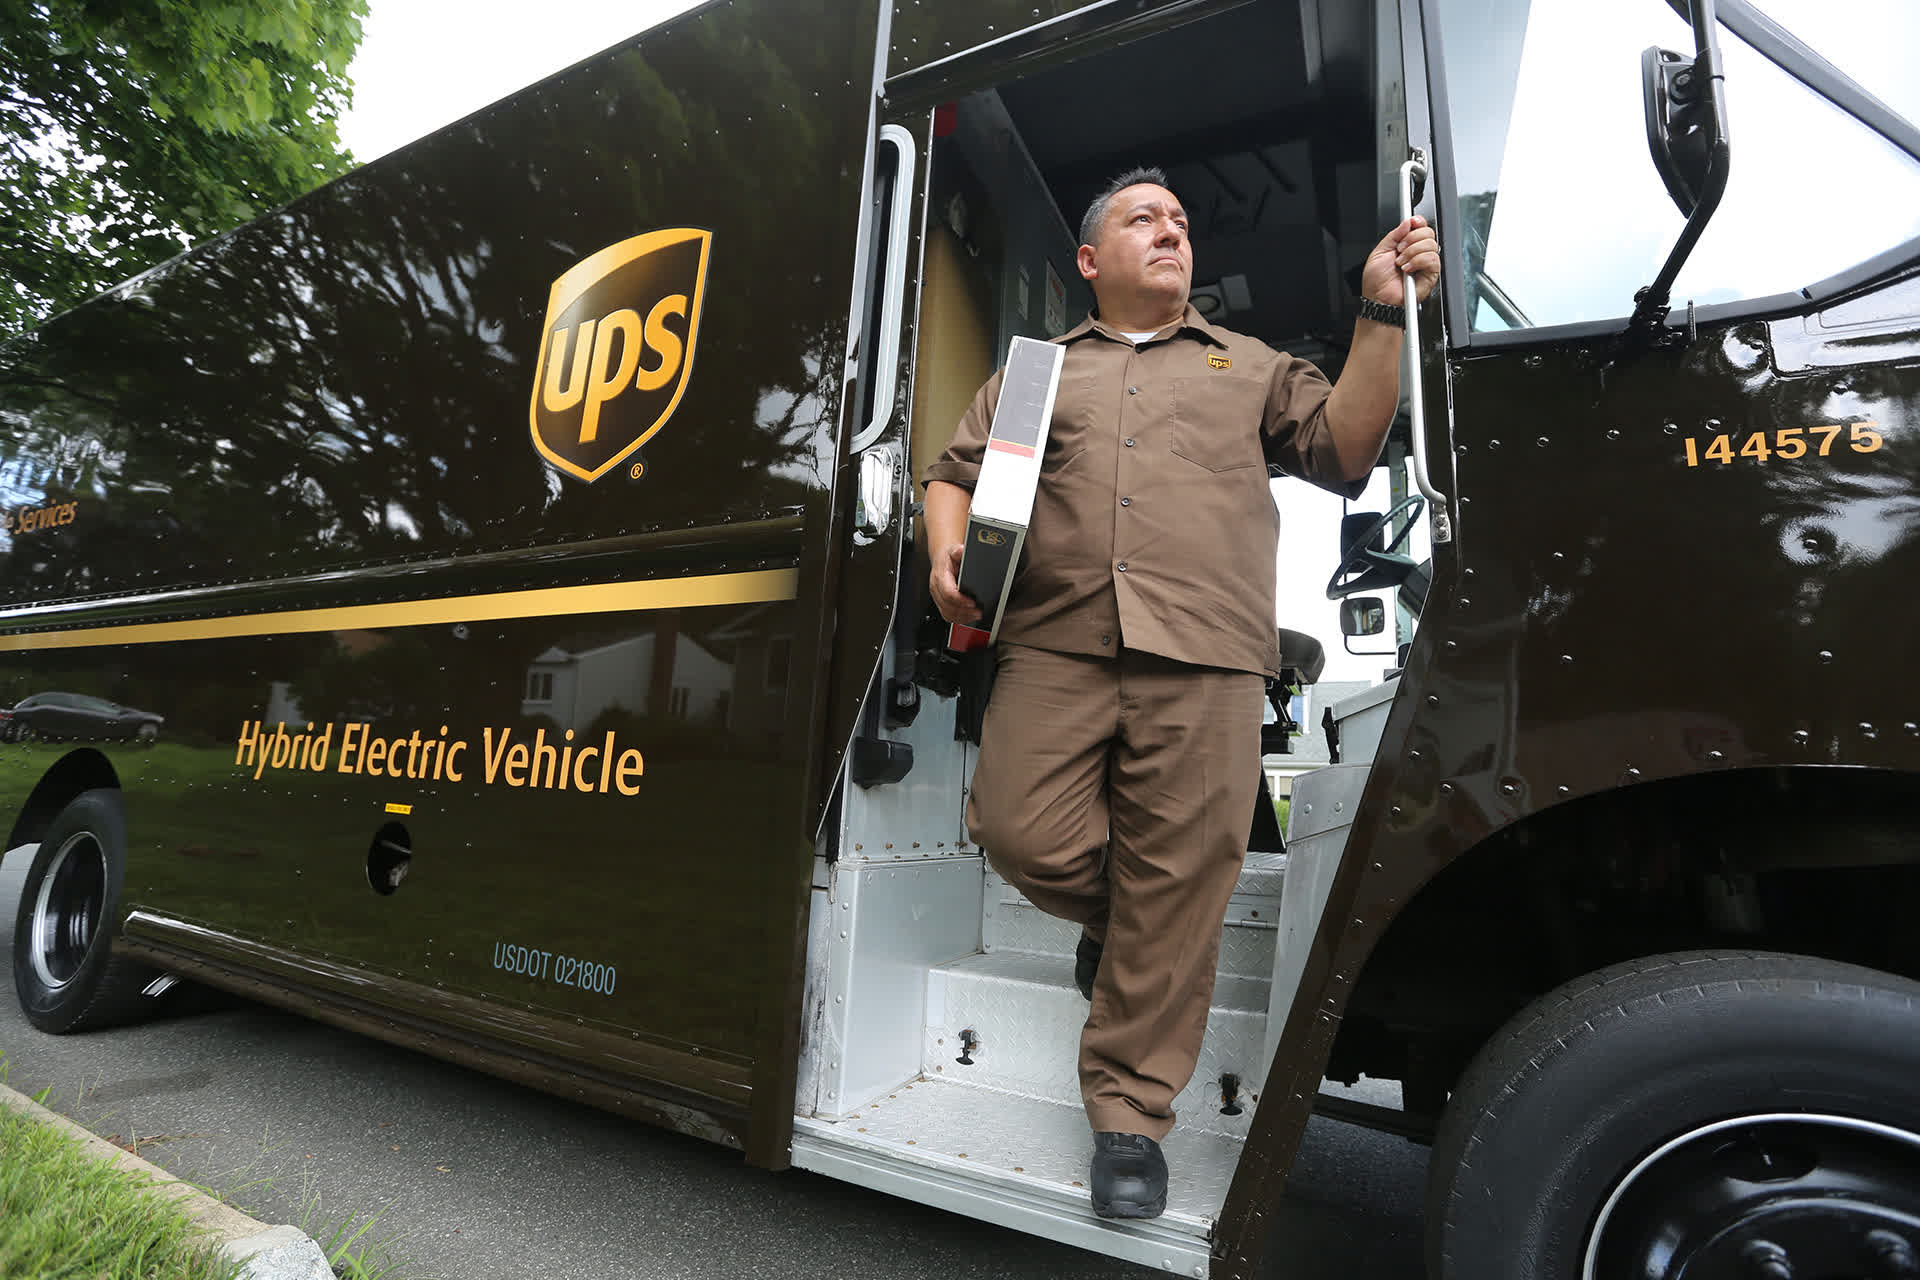 UPS: Even Amazon Can't Keep Big Brown Down - United Parcel Service, Inc. (NYSE:UPS)   Seeking Alpha